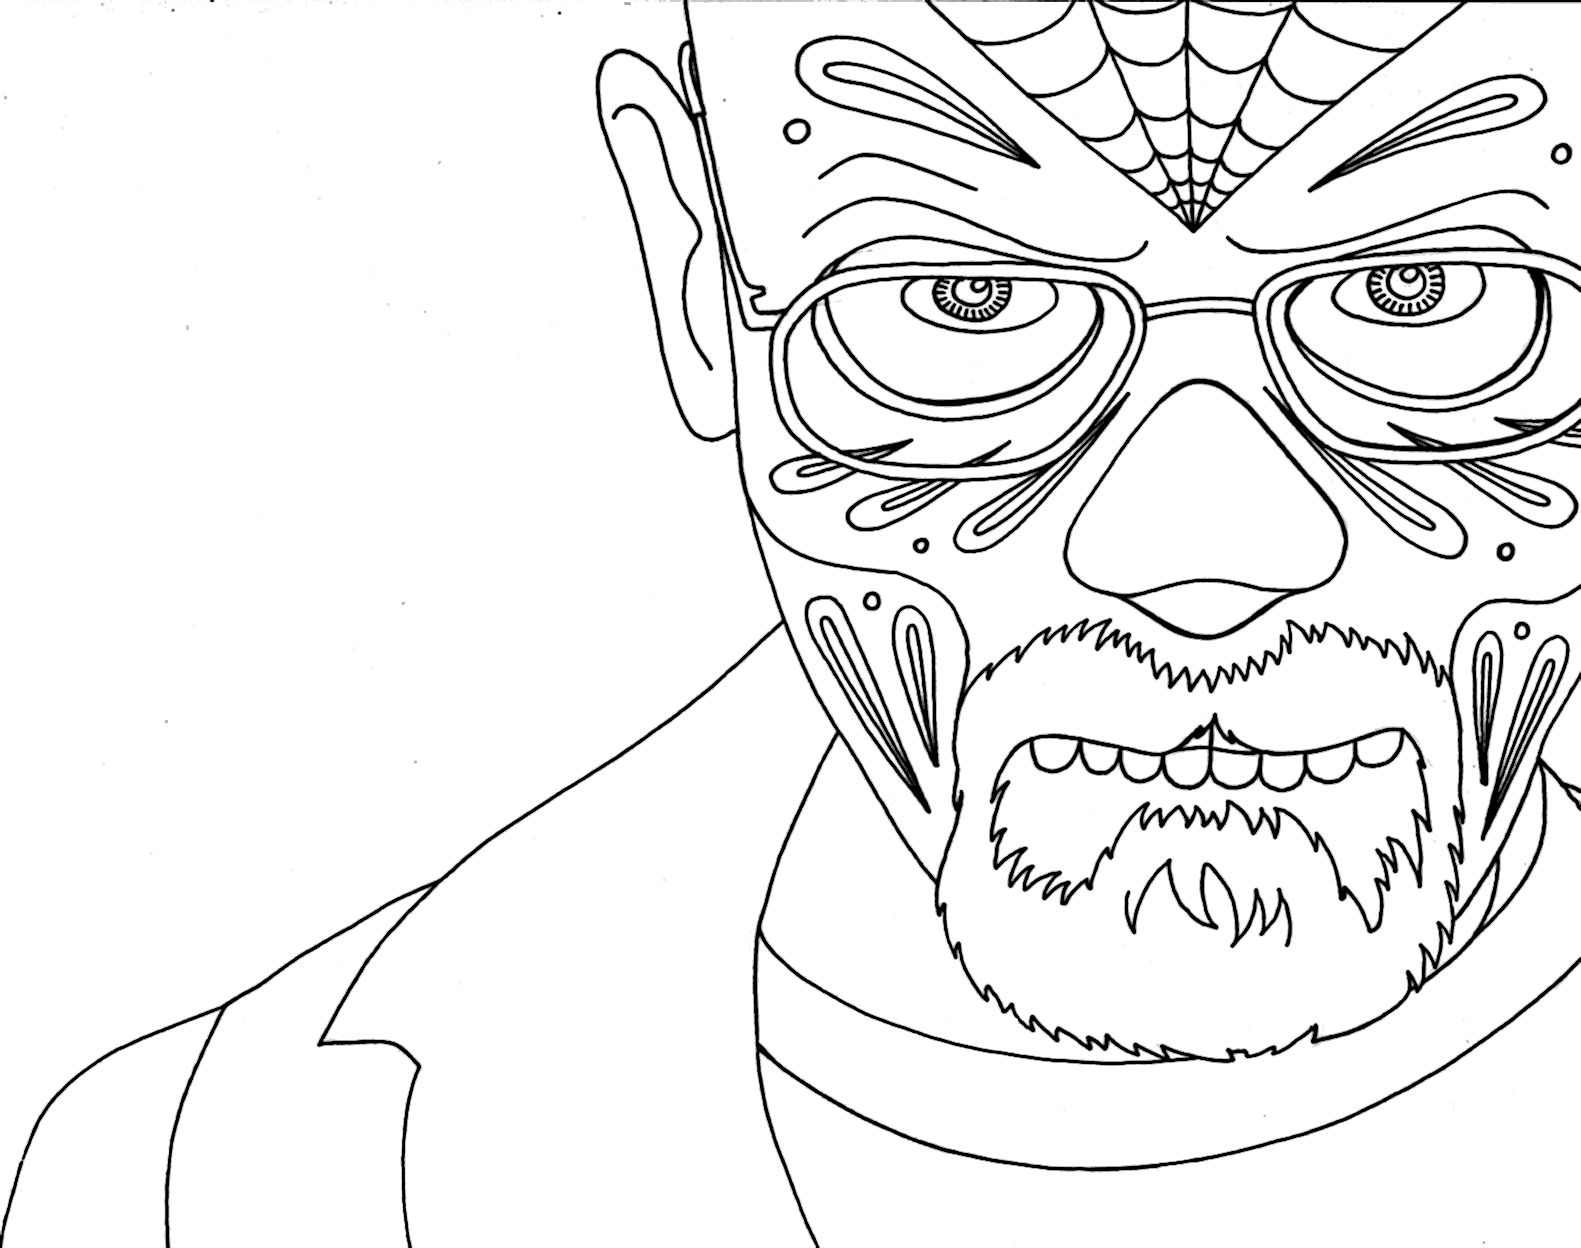 Breaking Bad Coloring Page Coloring Pages Free Printable Coloring Pages Scary Coloring Pages